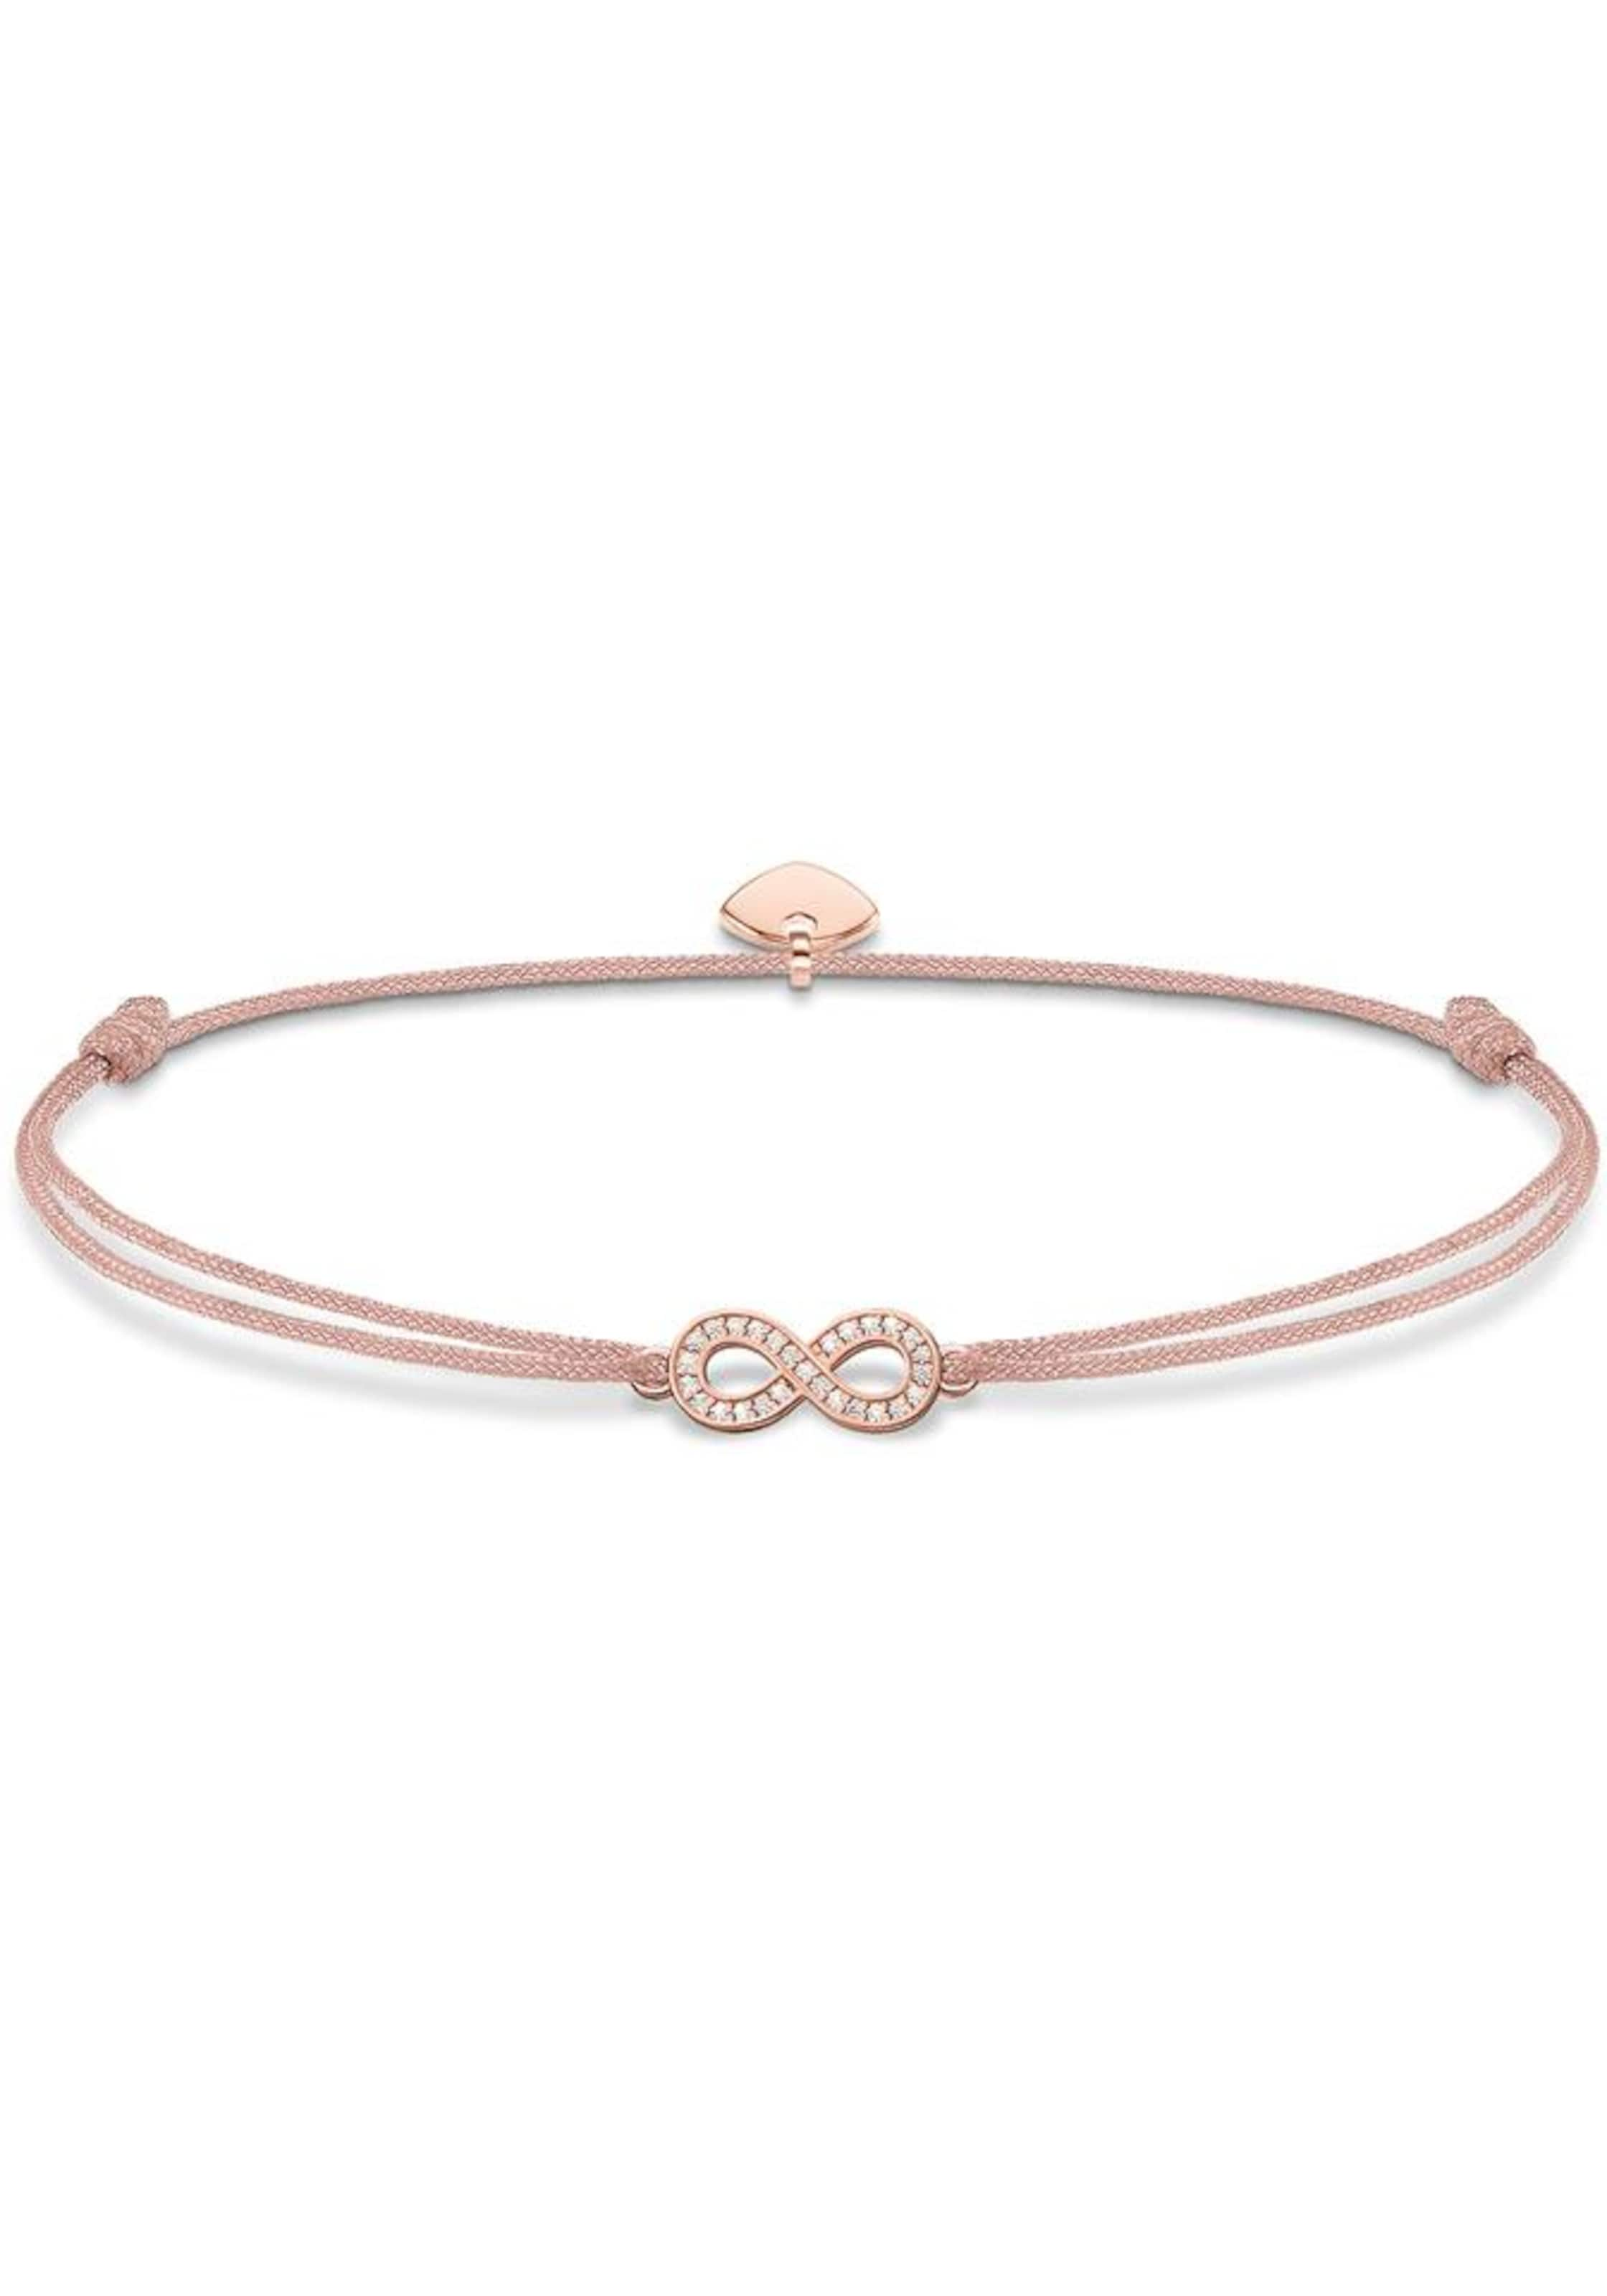 Infinity' BeigeRosegold Sabo Armband Secret 'little In Weiß Thomas BexdoCWr